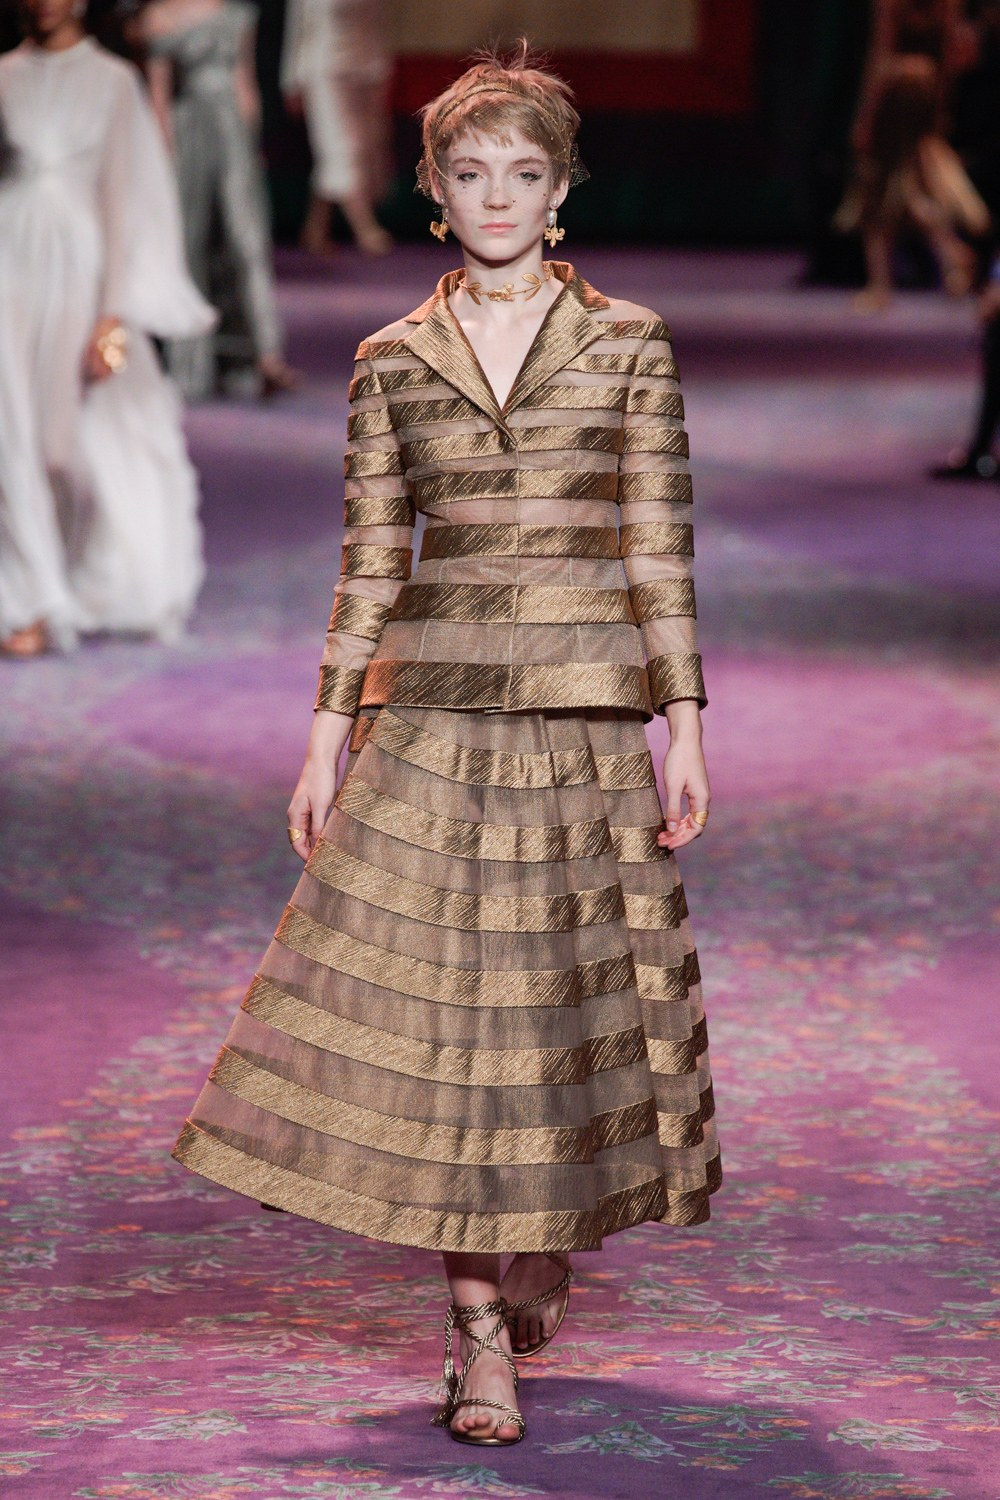 Christian Dior Spring couture 2020